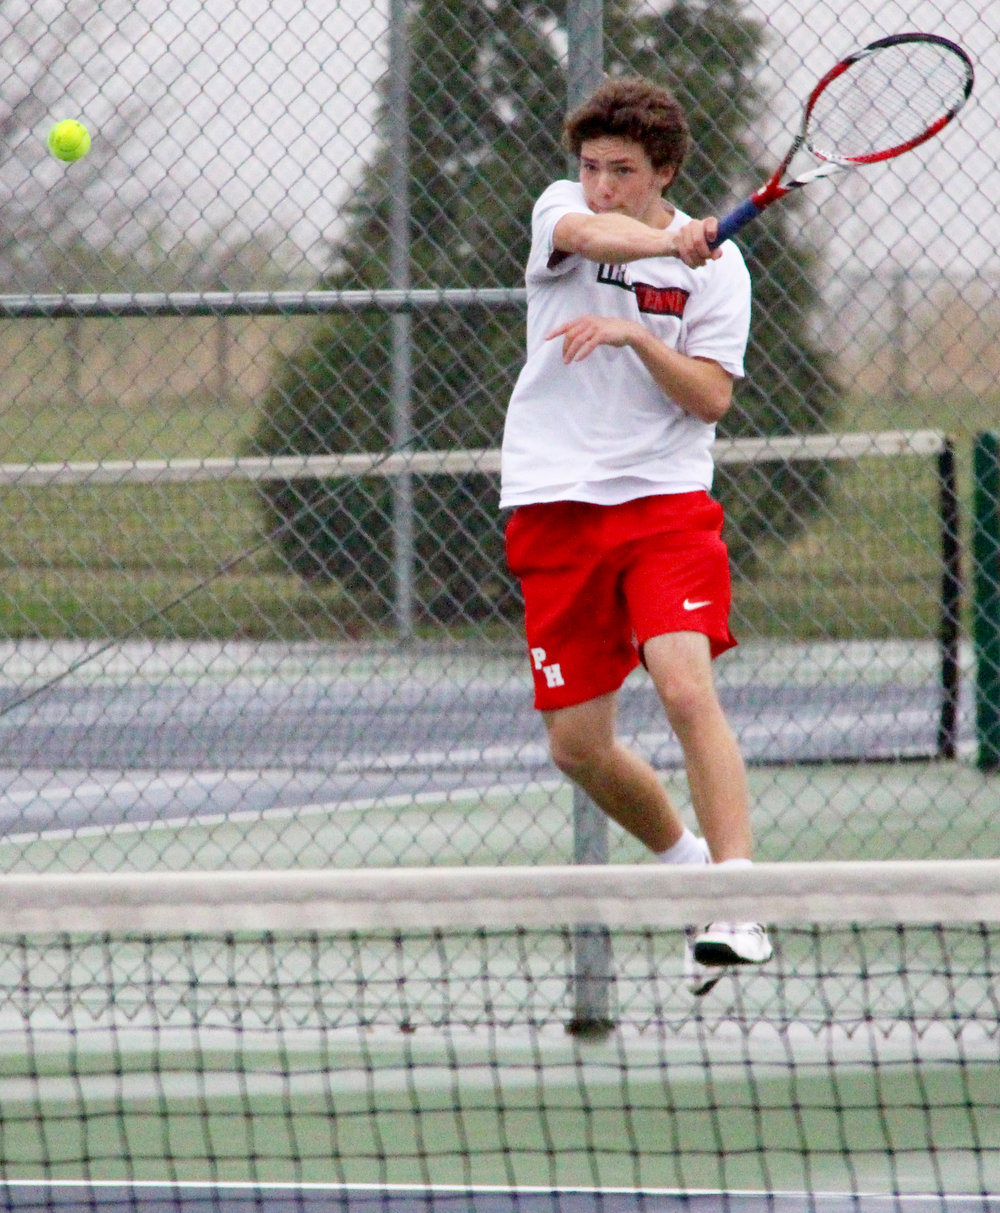 ROSS MARTIN/Citizen photo Park Hill senior Grant Martin hits a return shot in a singles match during a dual with Park Hill South on Thursday, March 30 at Park Hill South High School in Riverside, Mo.